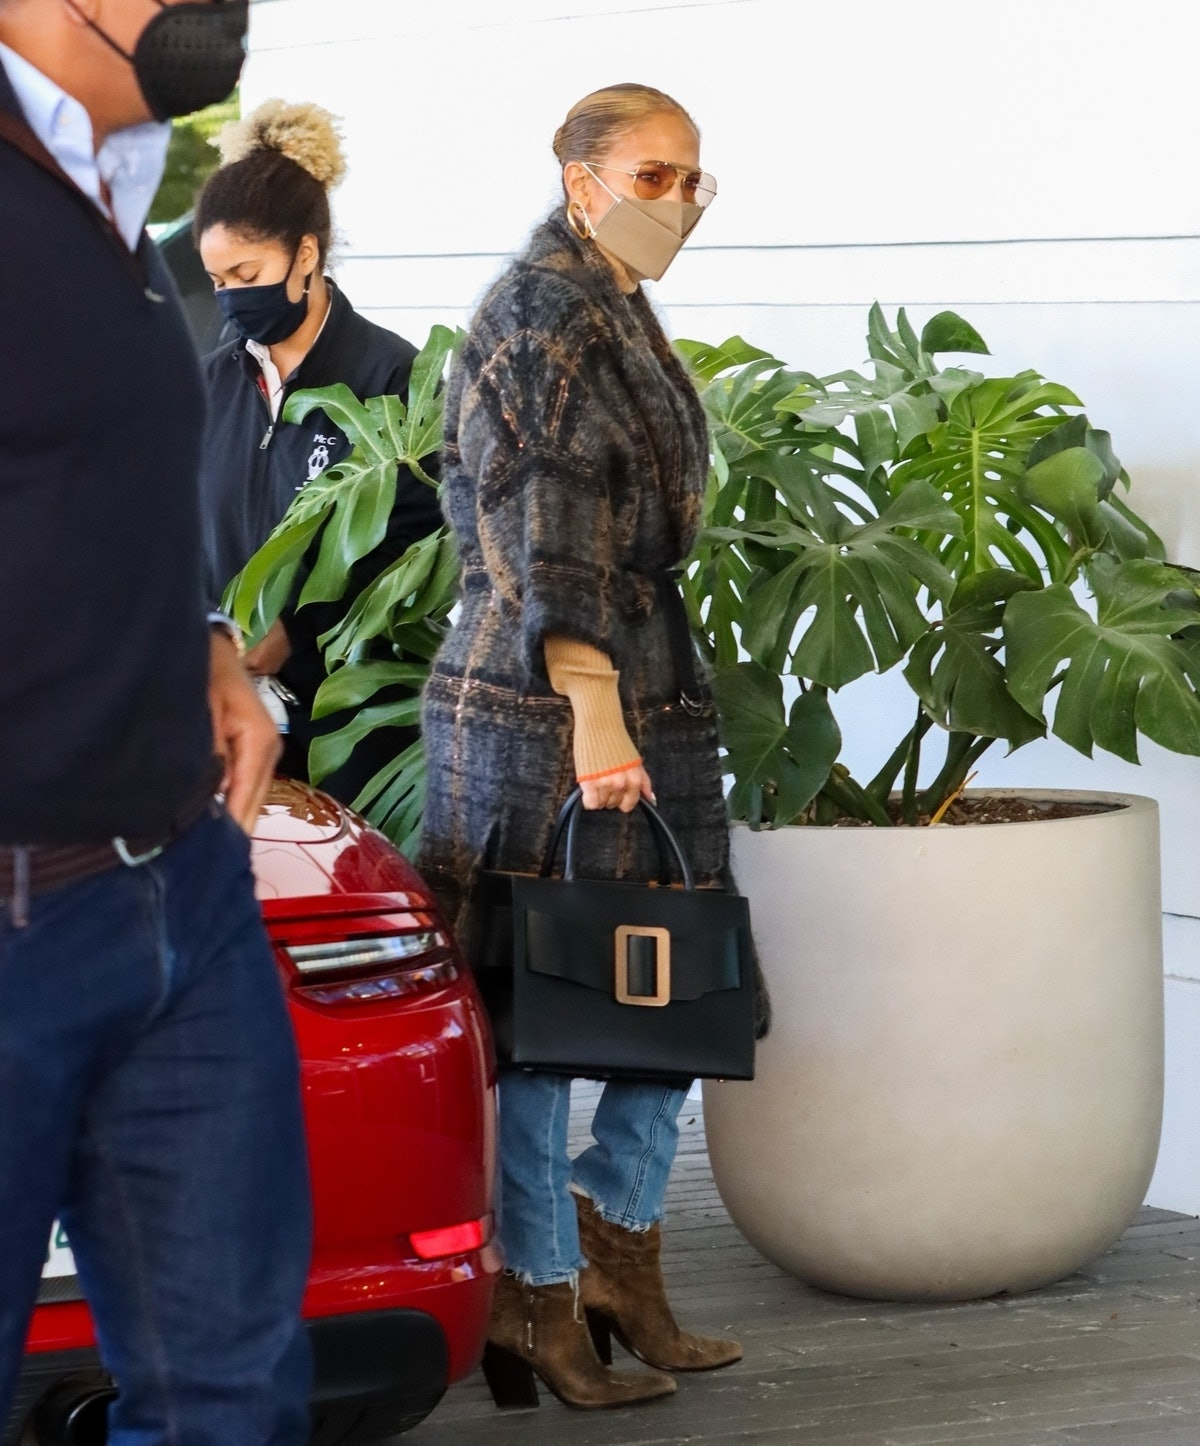 Jennifer Lopez and Alex Rodriguez Have Lunch Together In Coral Gables on Feb. 3, 2021.